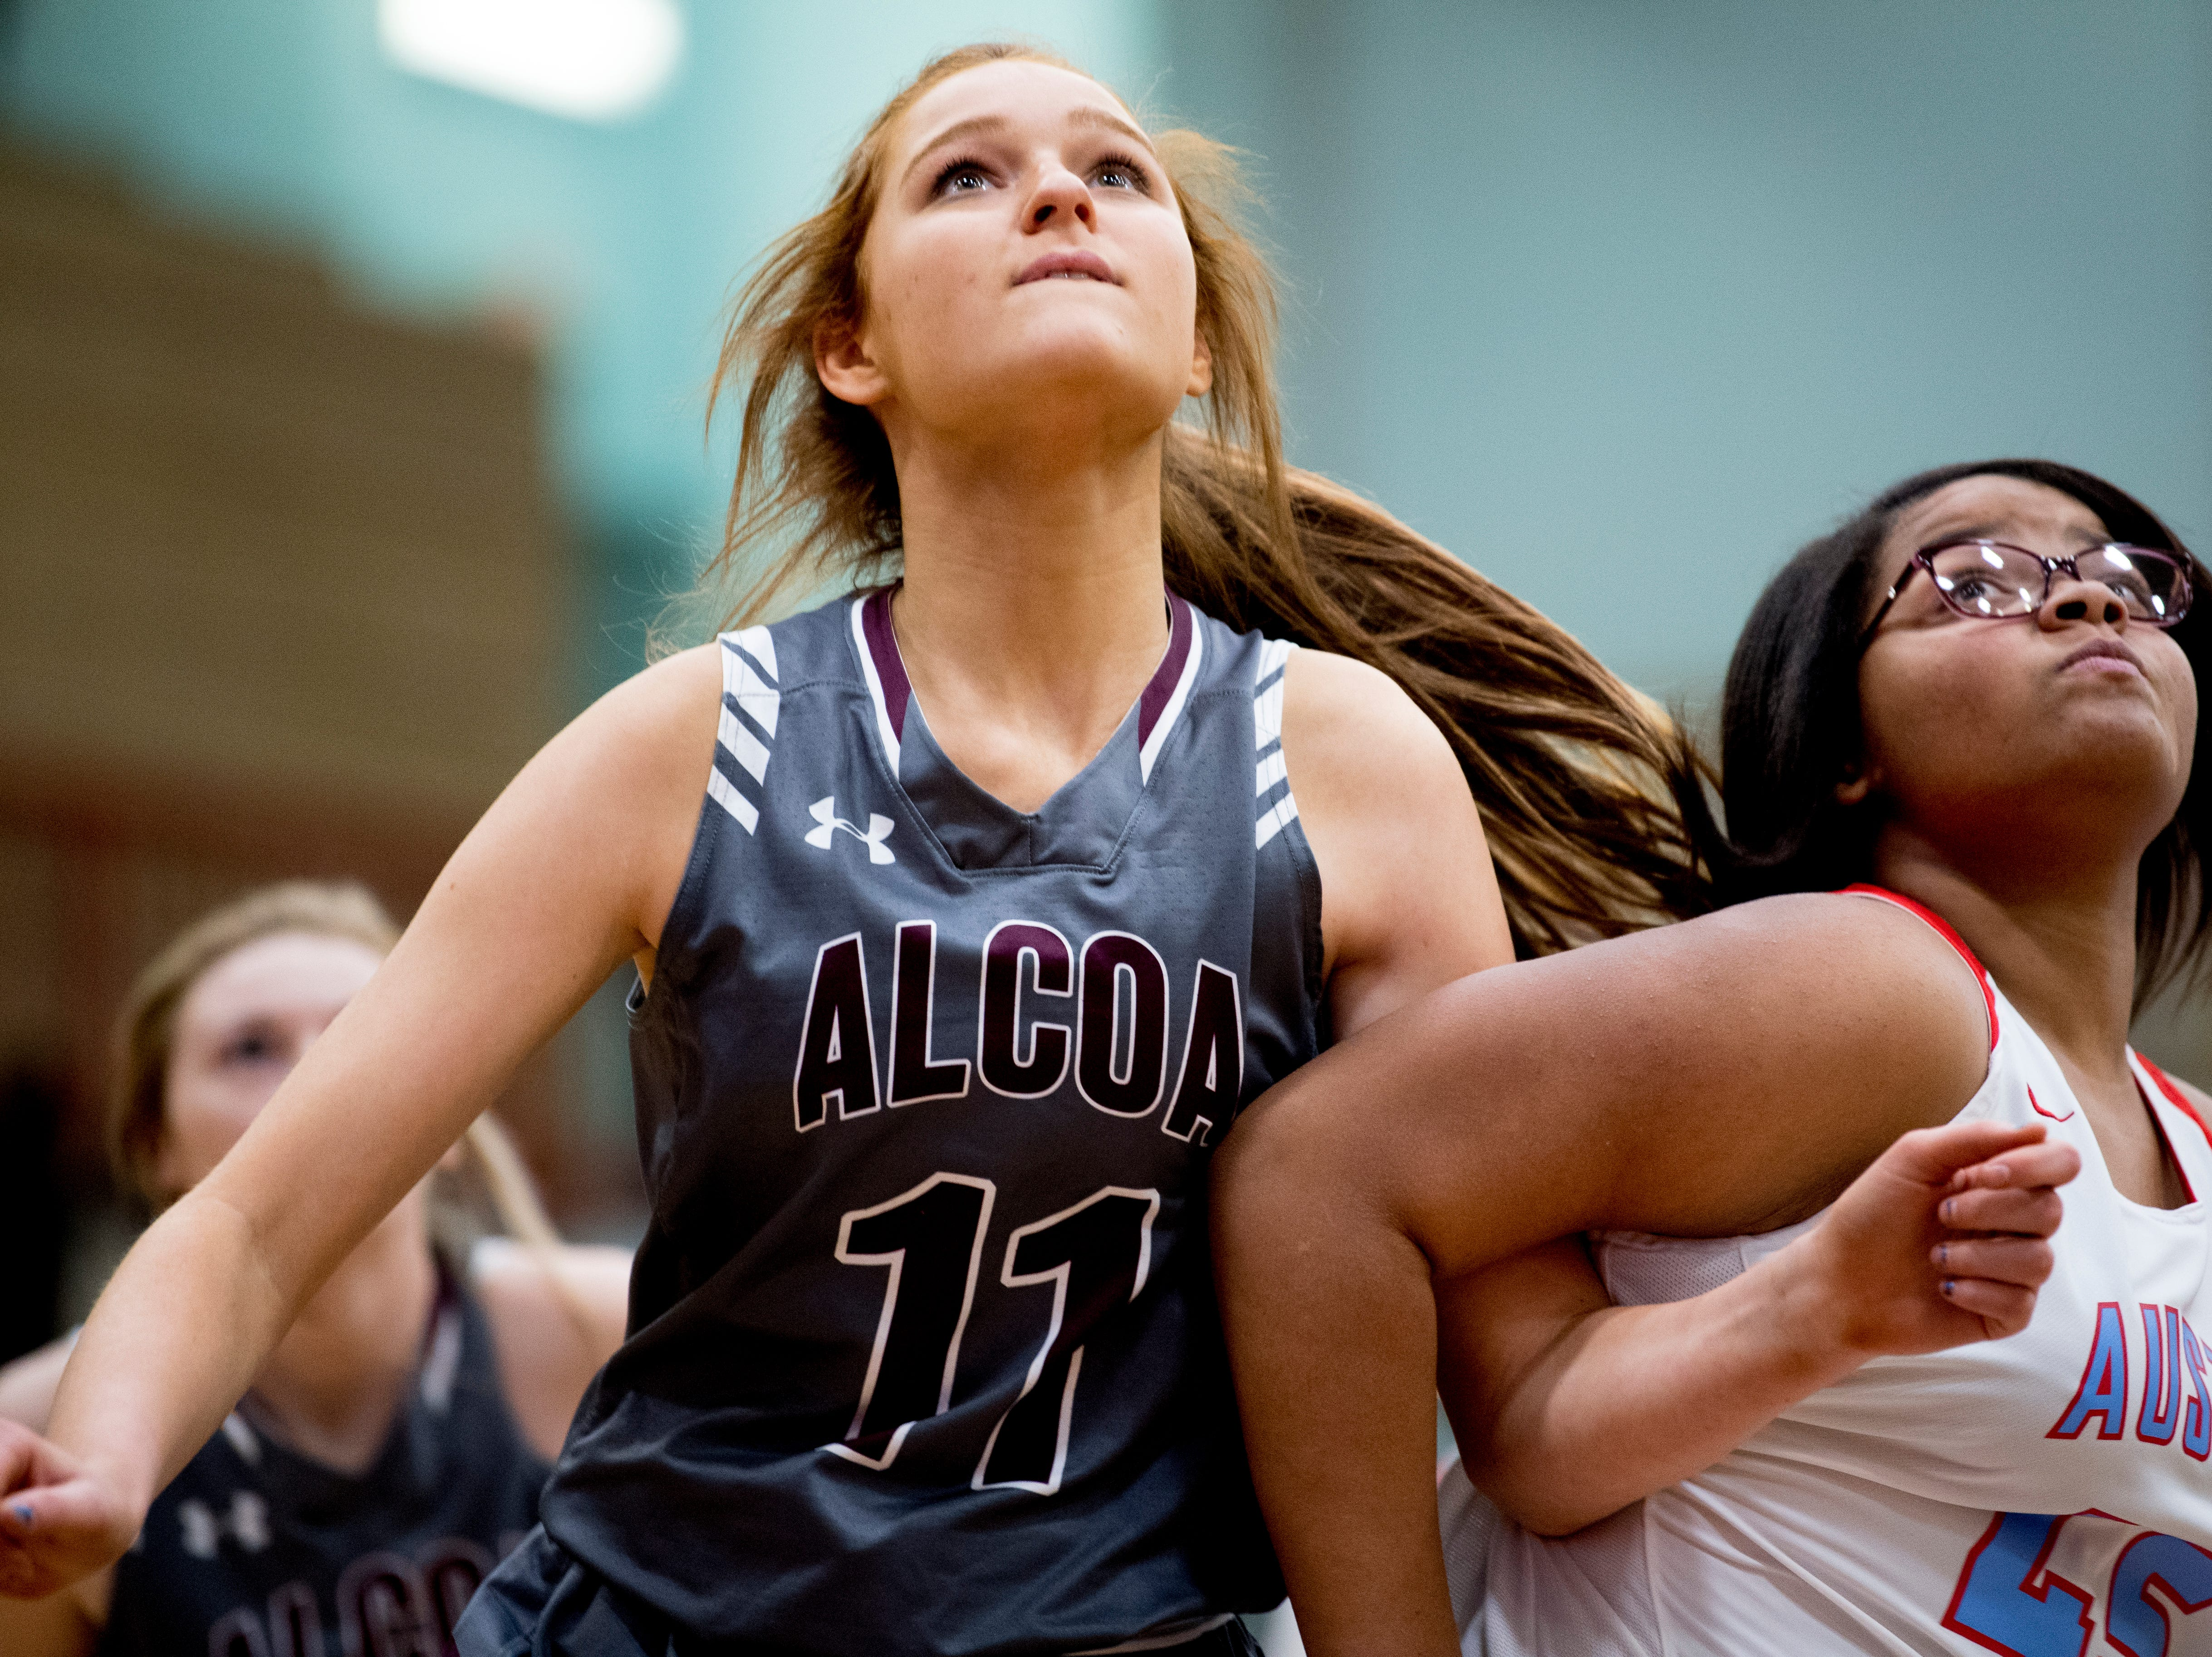 Alcoa's Caleigh Carruthers (11) and Austin-East's India Robinson (45) eye the rebound ball during a game between Austin-East and Alcoa at Austin-East High School in Knoxville, Tennessee on Friday, January 18, 2019.